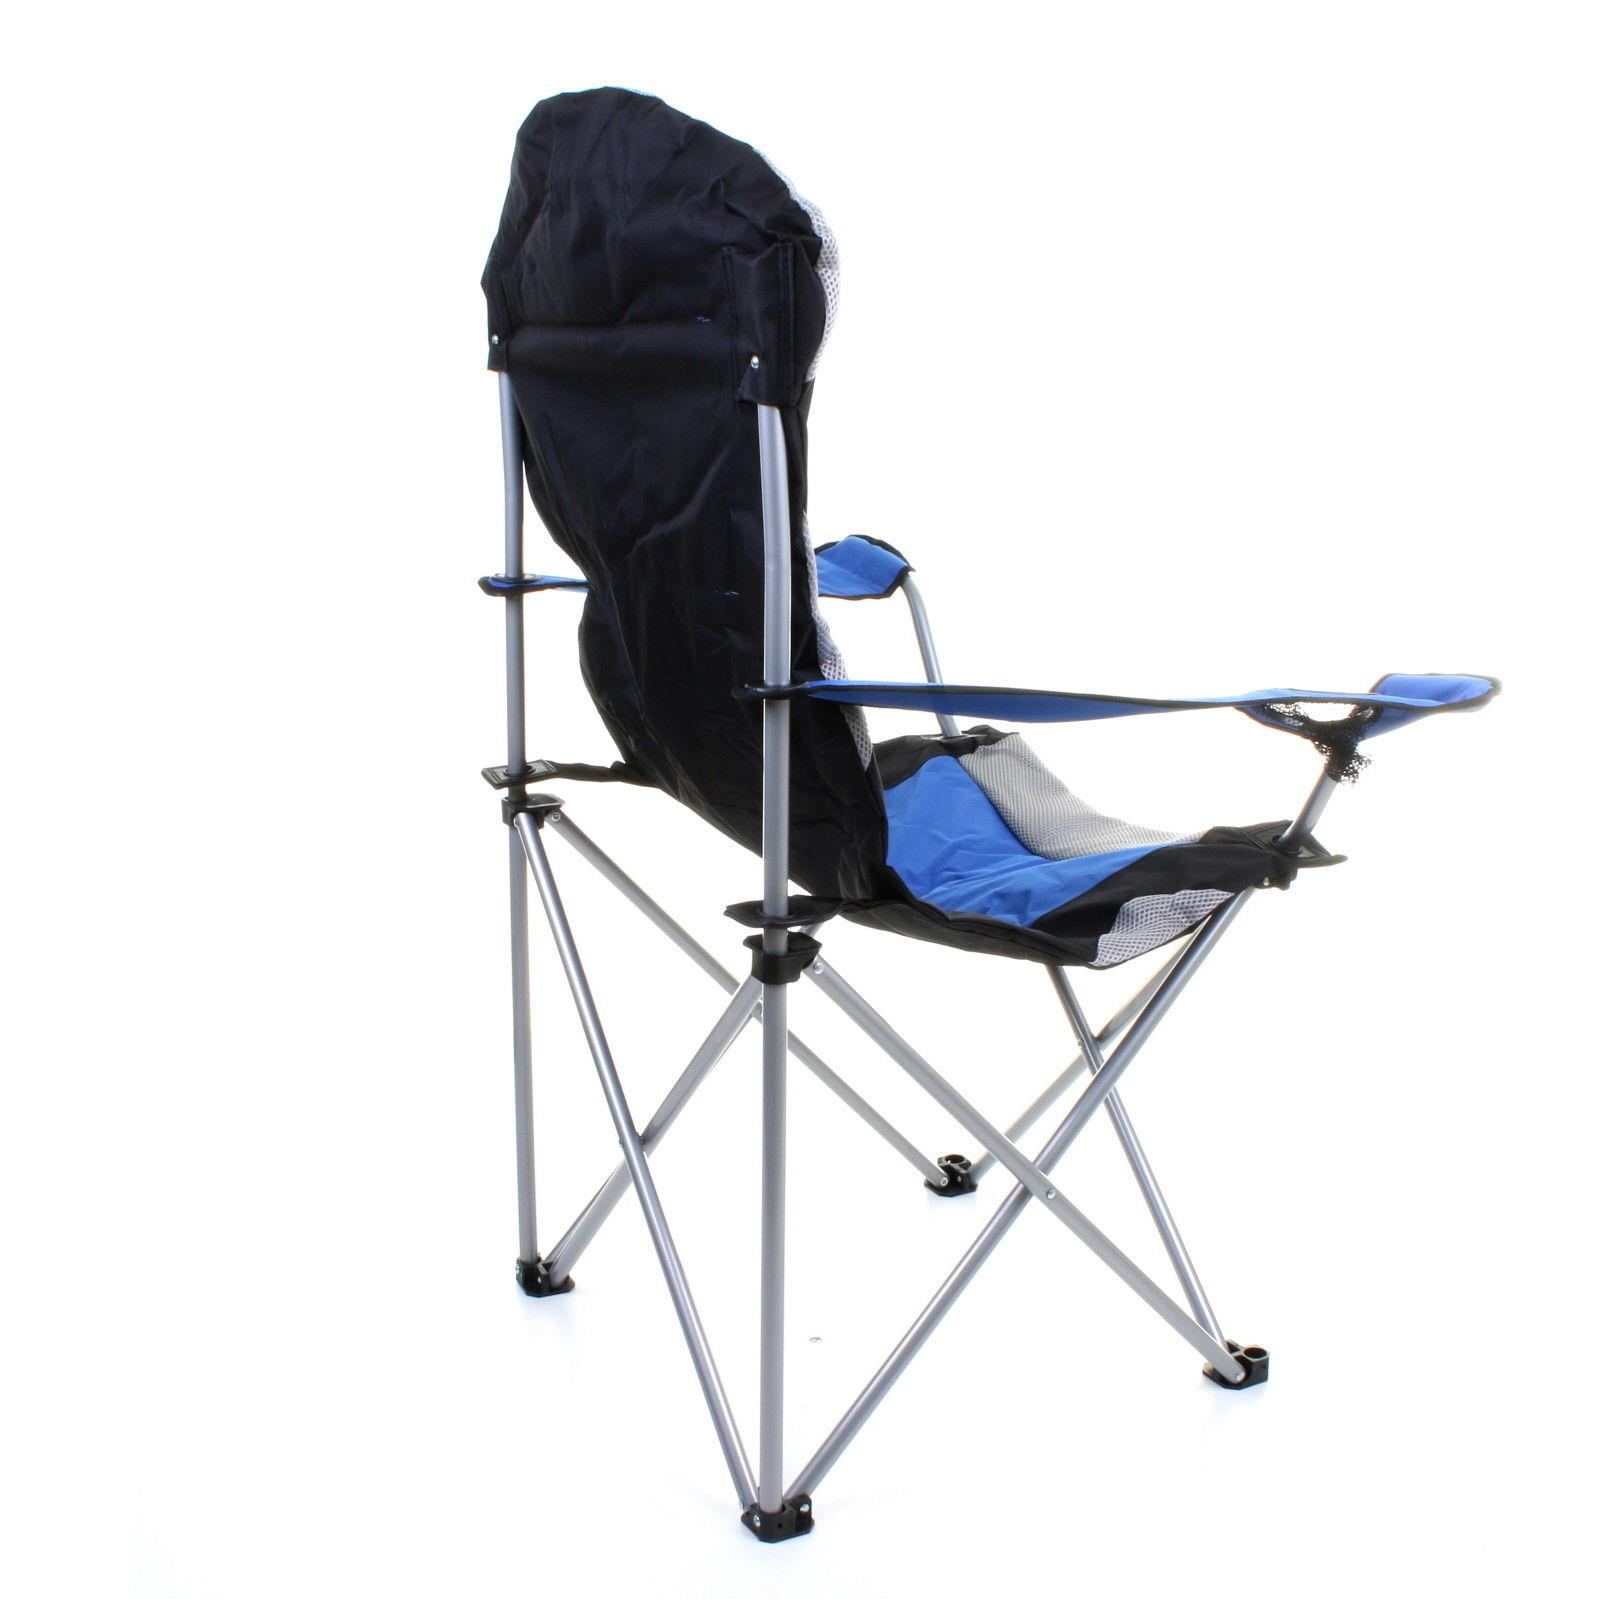 thumbnail 6 - Folding Camping Deluxe Chairs Heavy Duty Luxury Padded with Cup Holder High Back